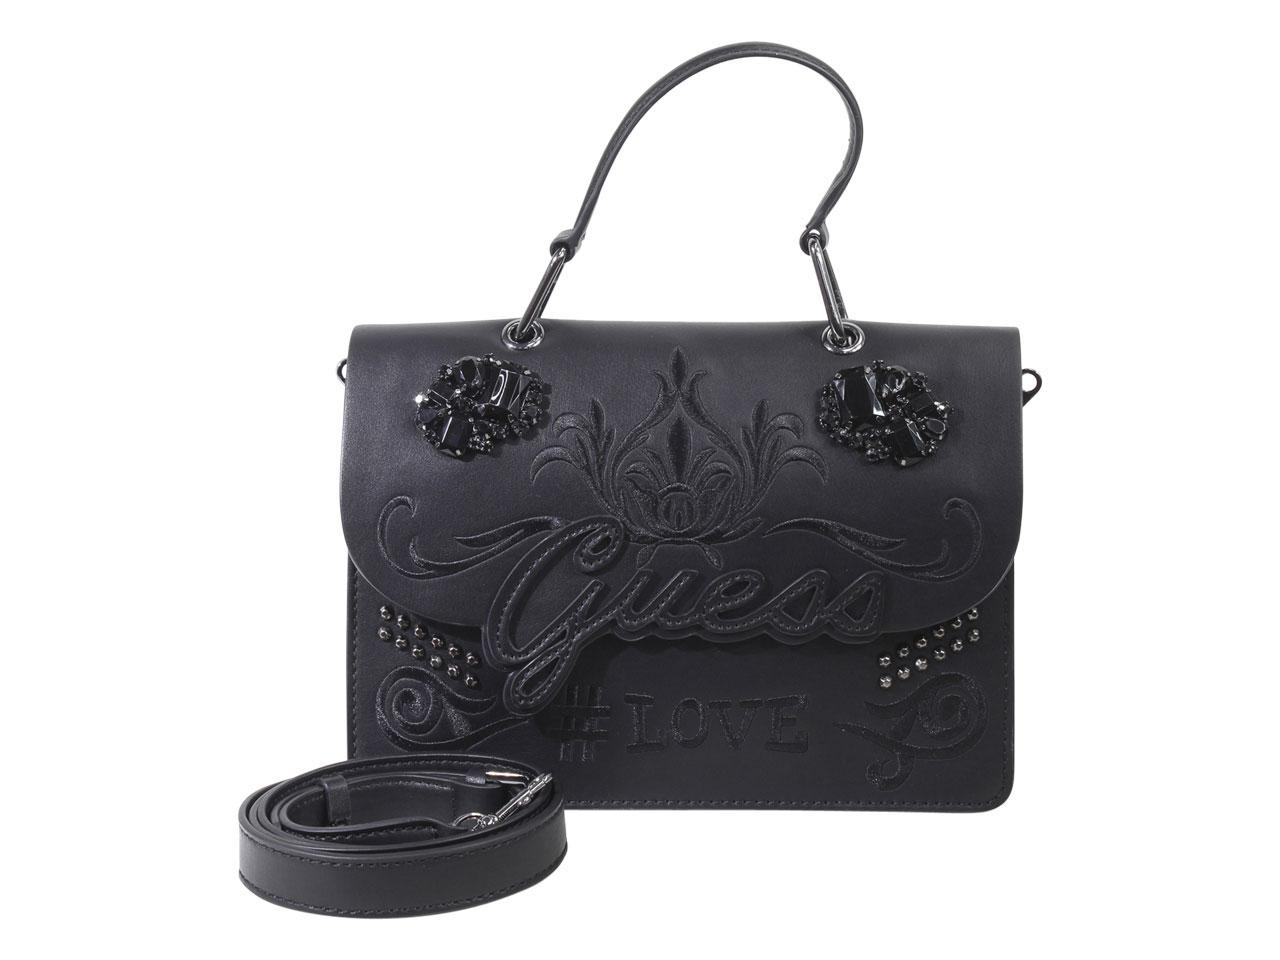 Guess Women s In Love Top Handle Handbag by Guess cb765354a3